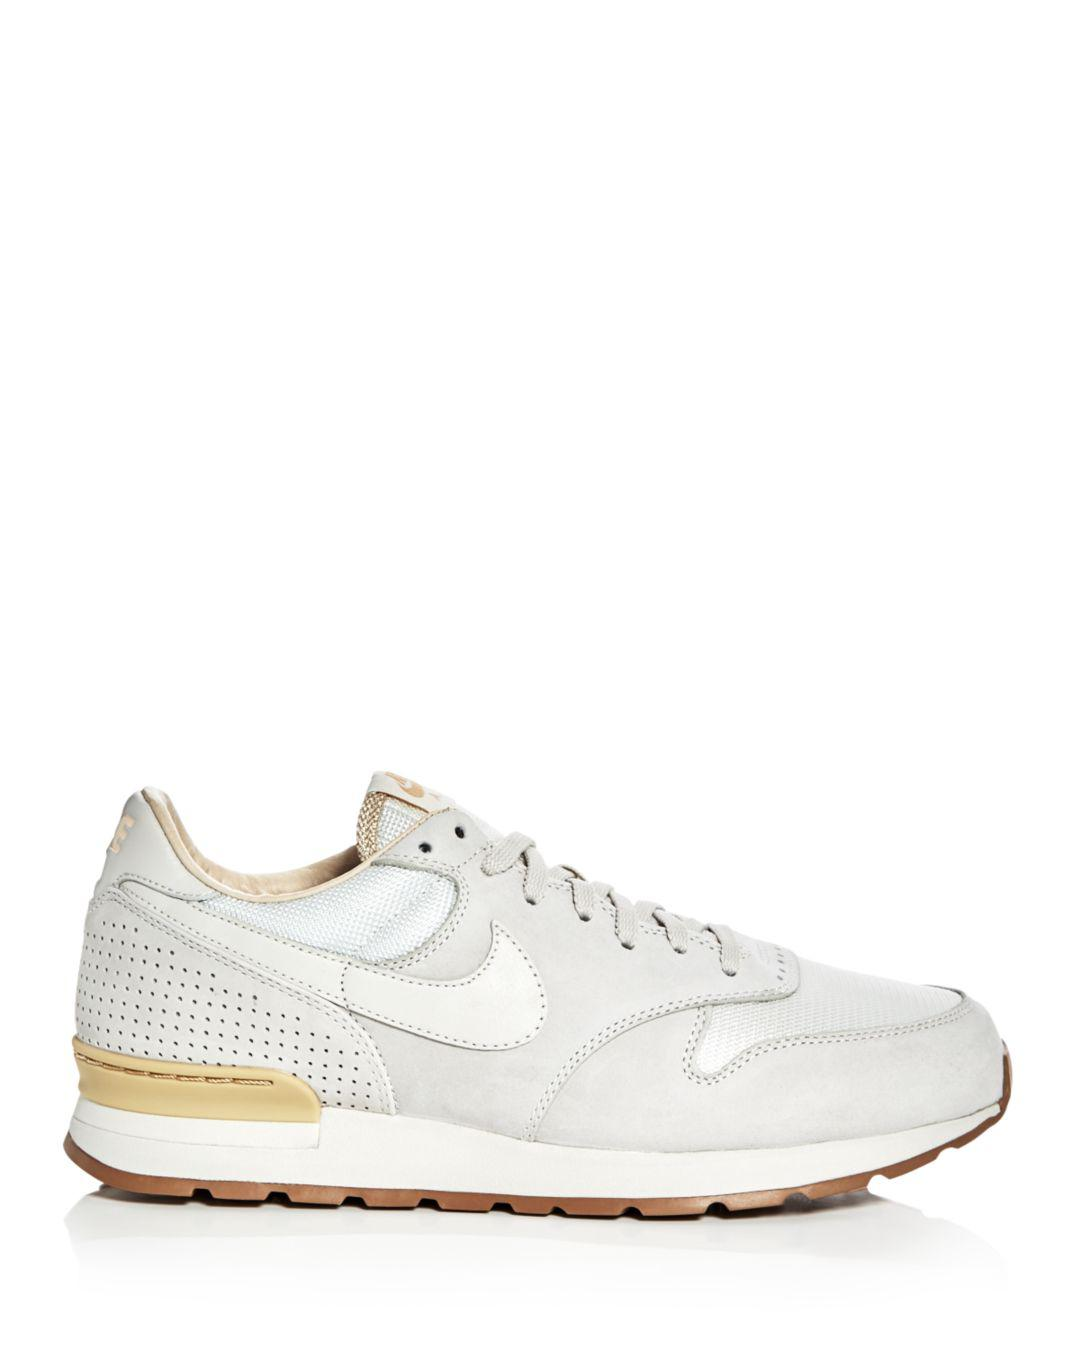 ab3bde2f07872 Lyst - Nike Men s Air Zoom Epic Luxe Lace Up Sneakers in White for Men